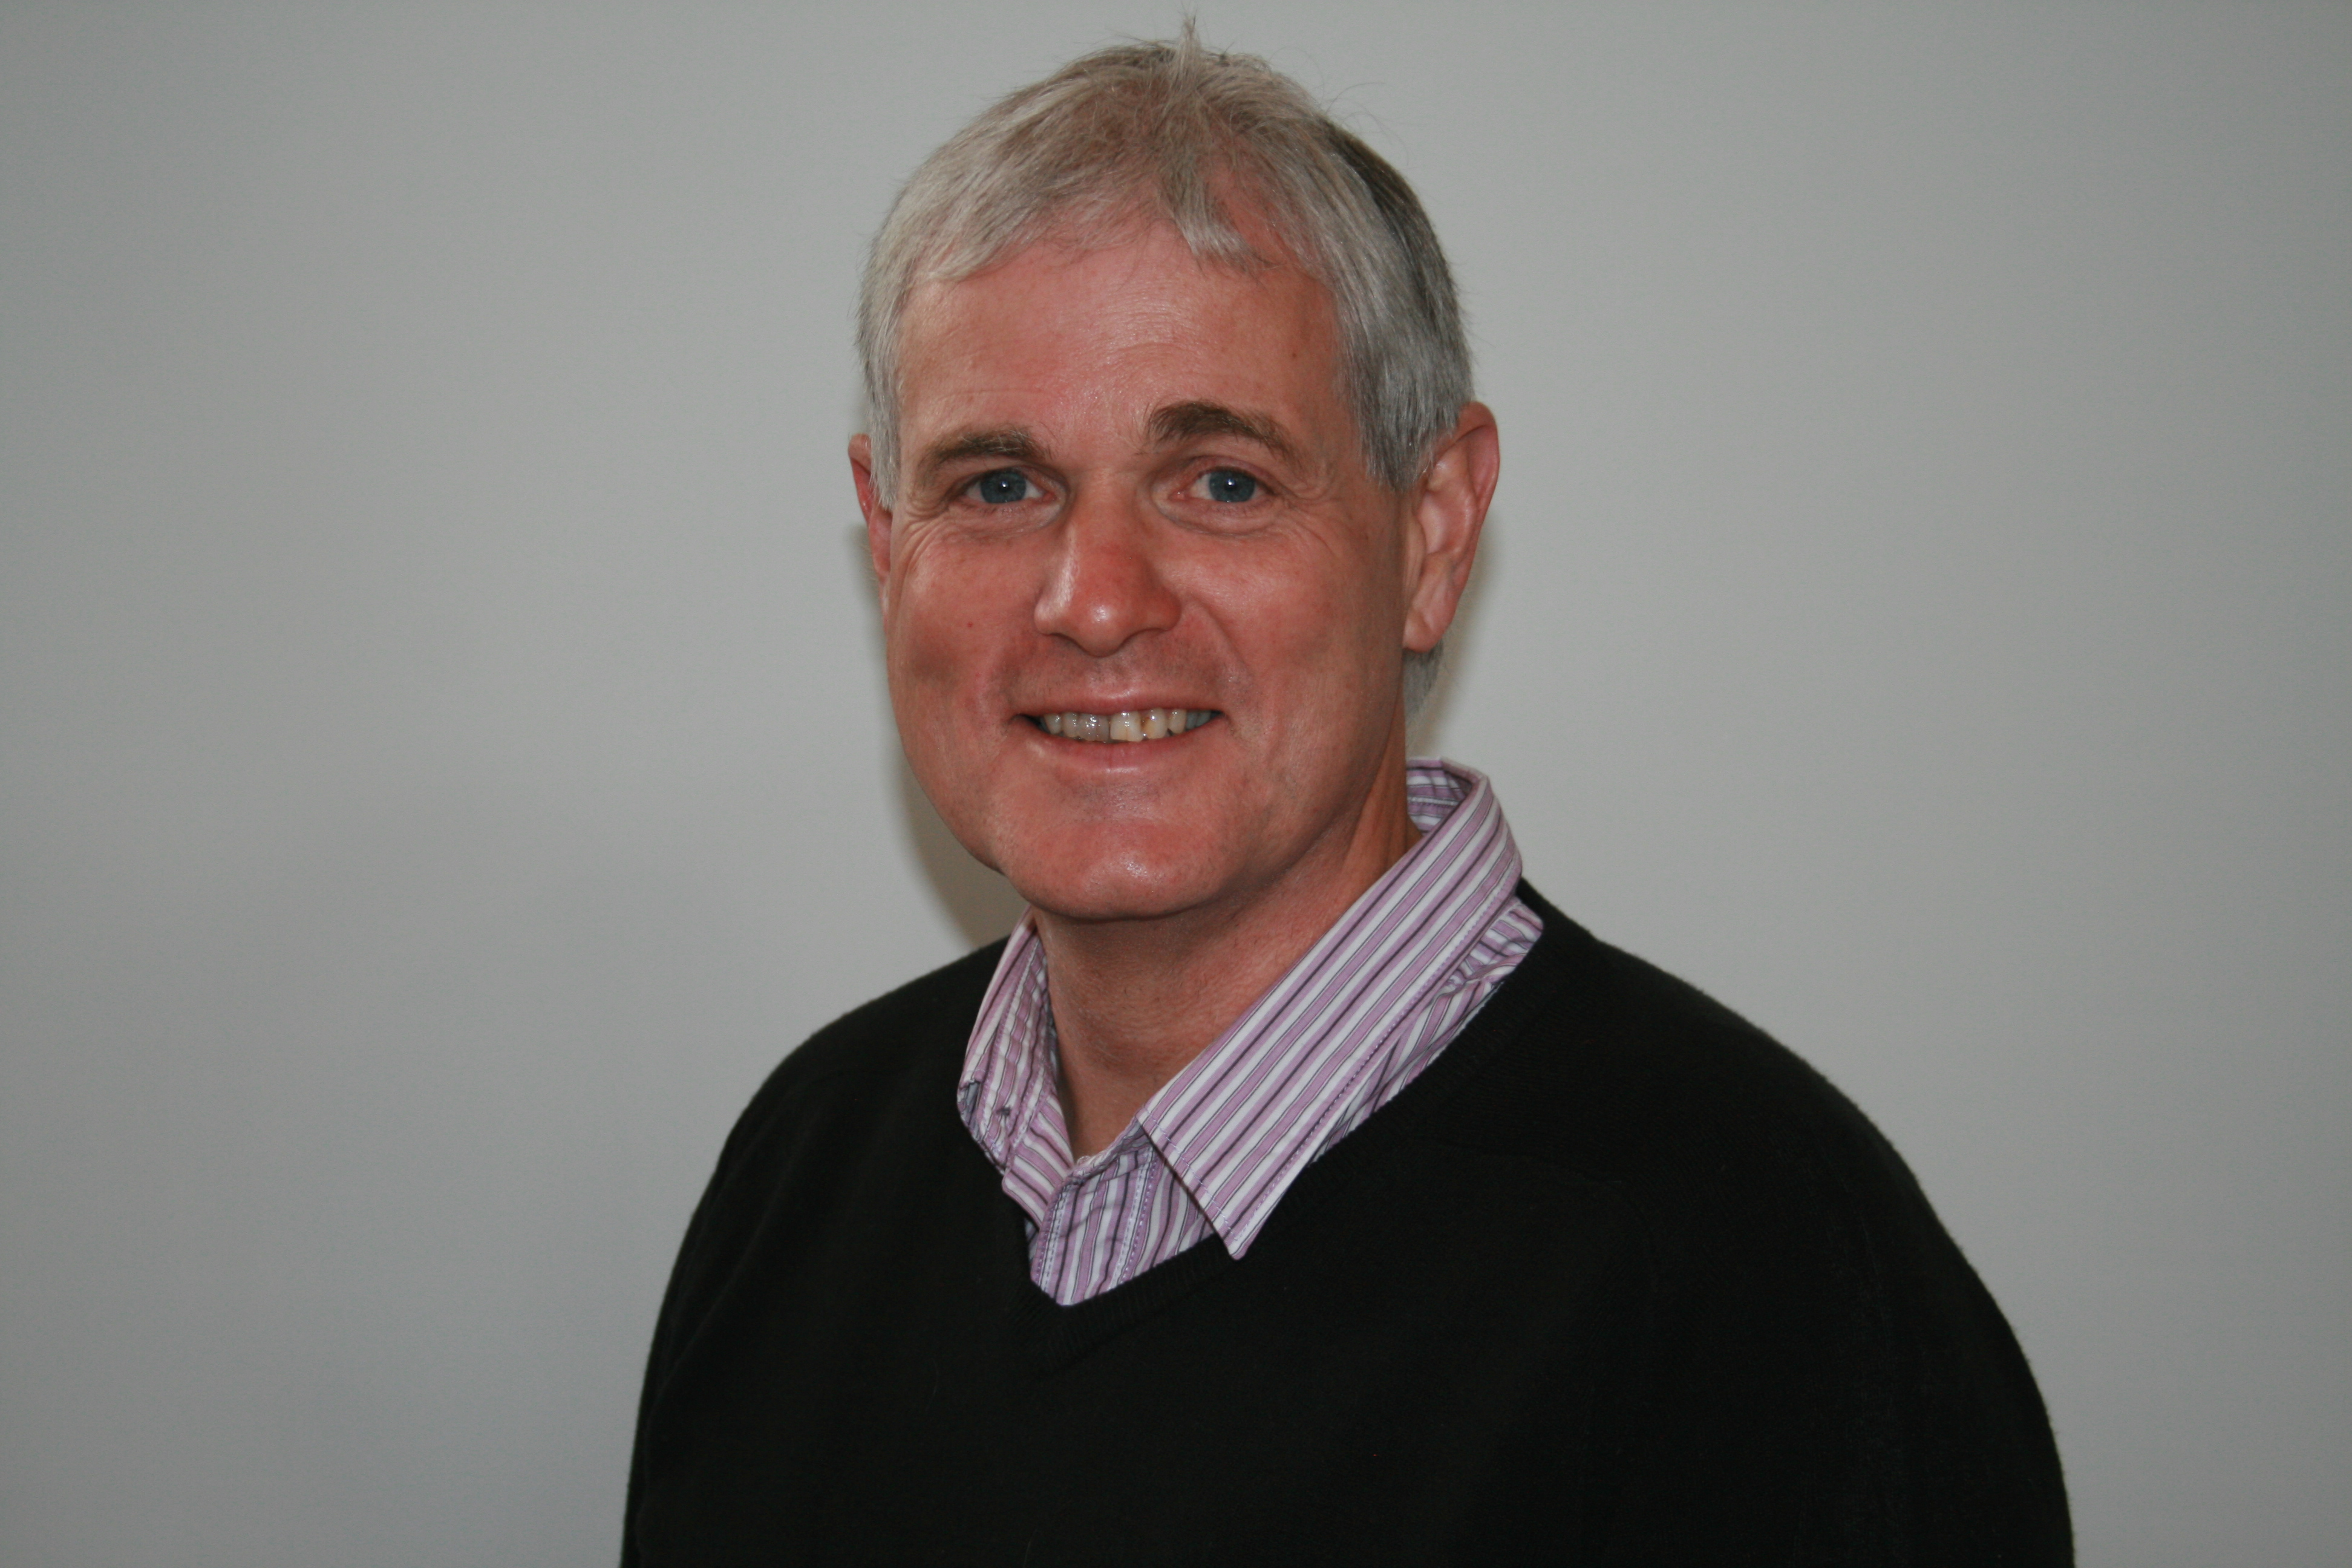 Stephen Coulter